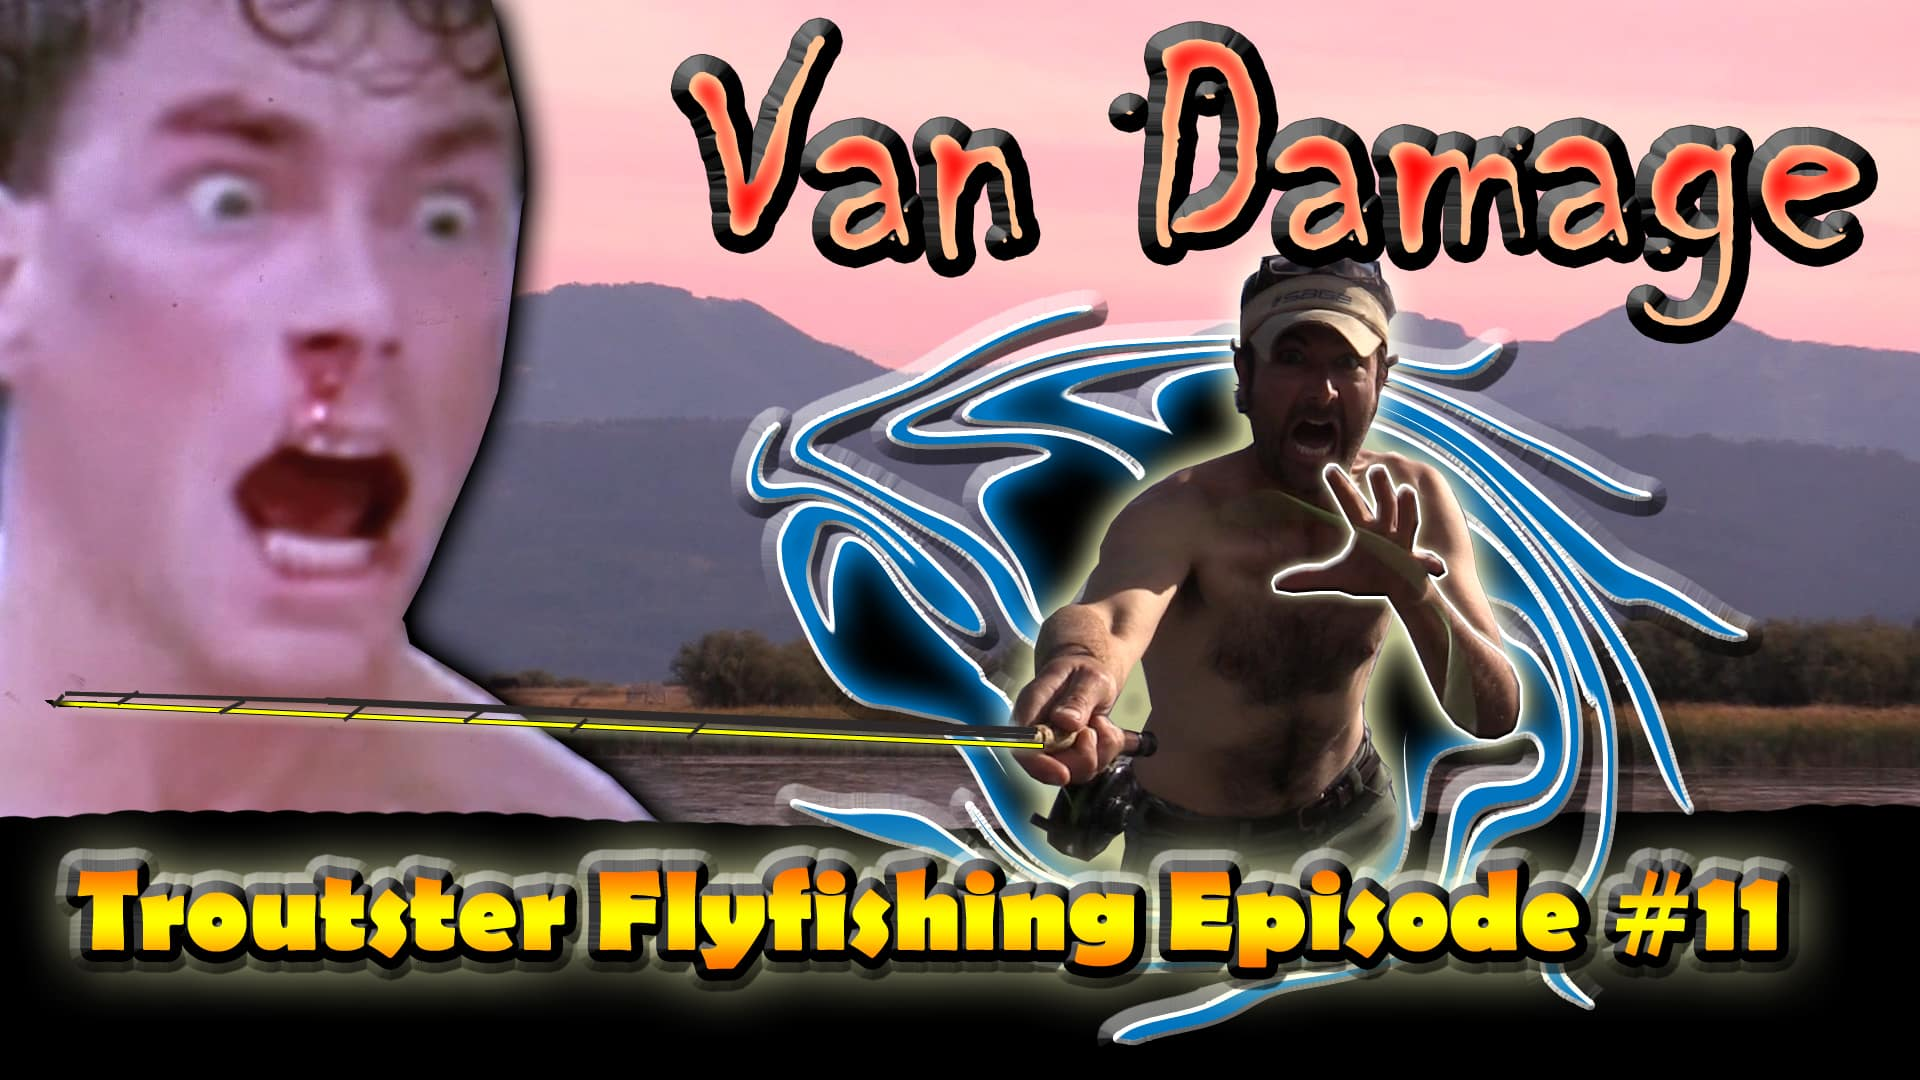 Troutster flyfishing episode 11 Doing some Vandamage